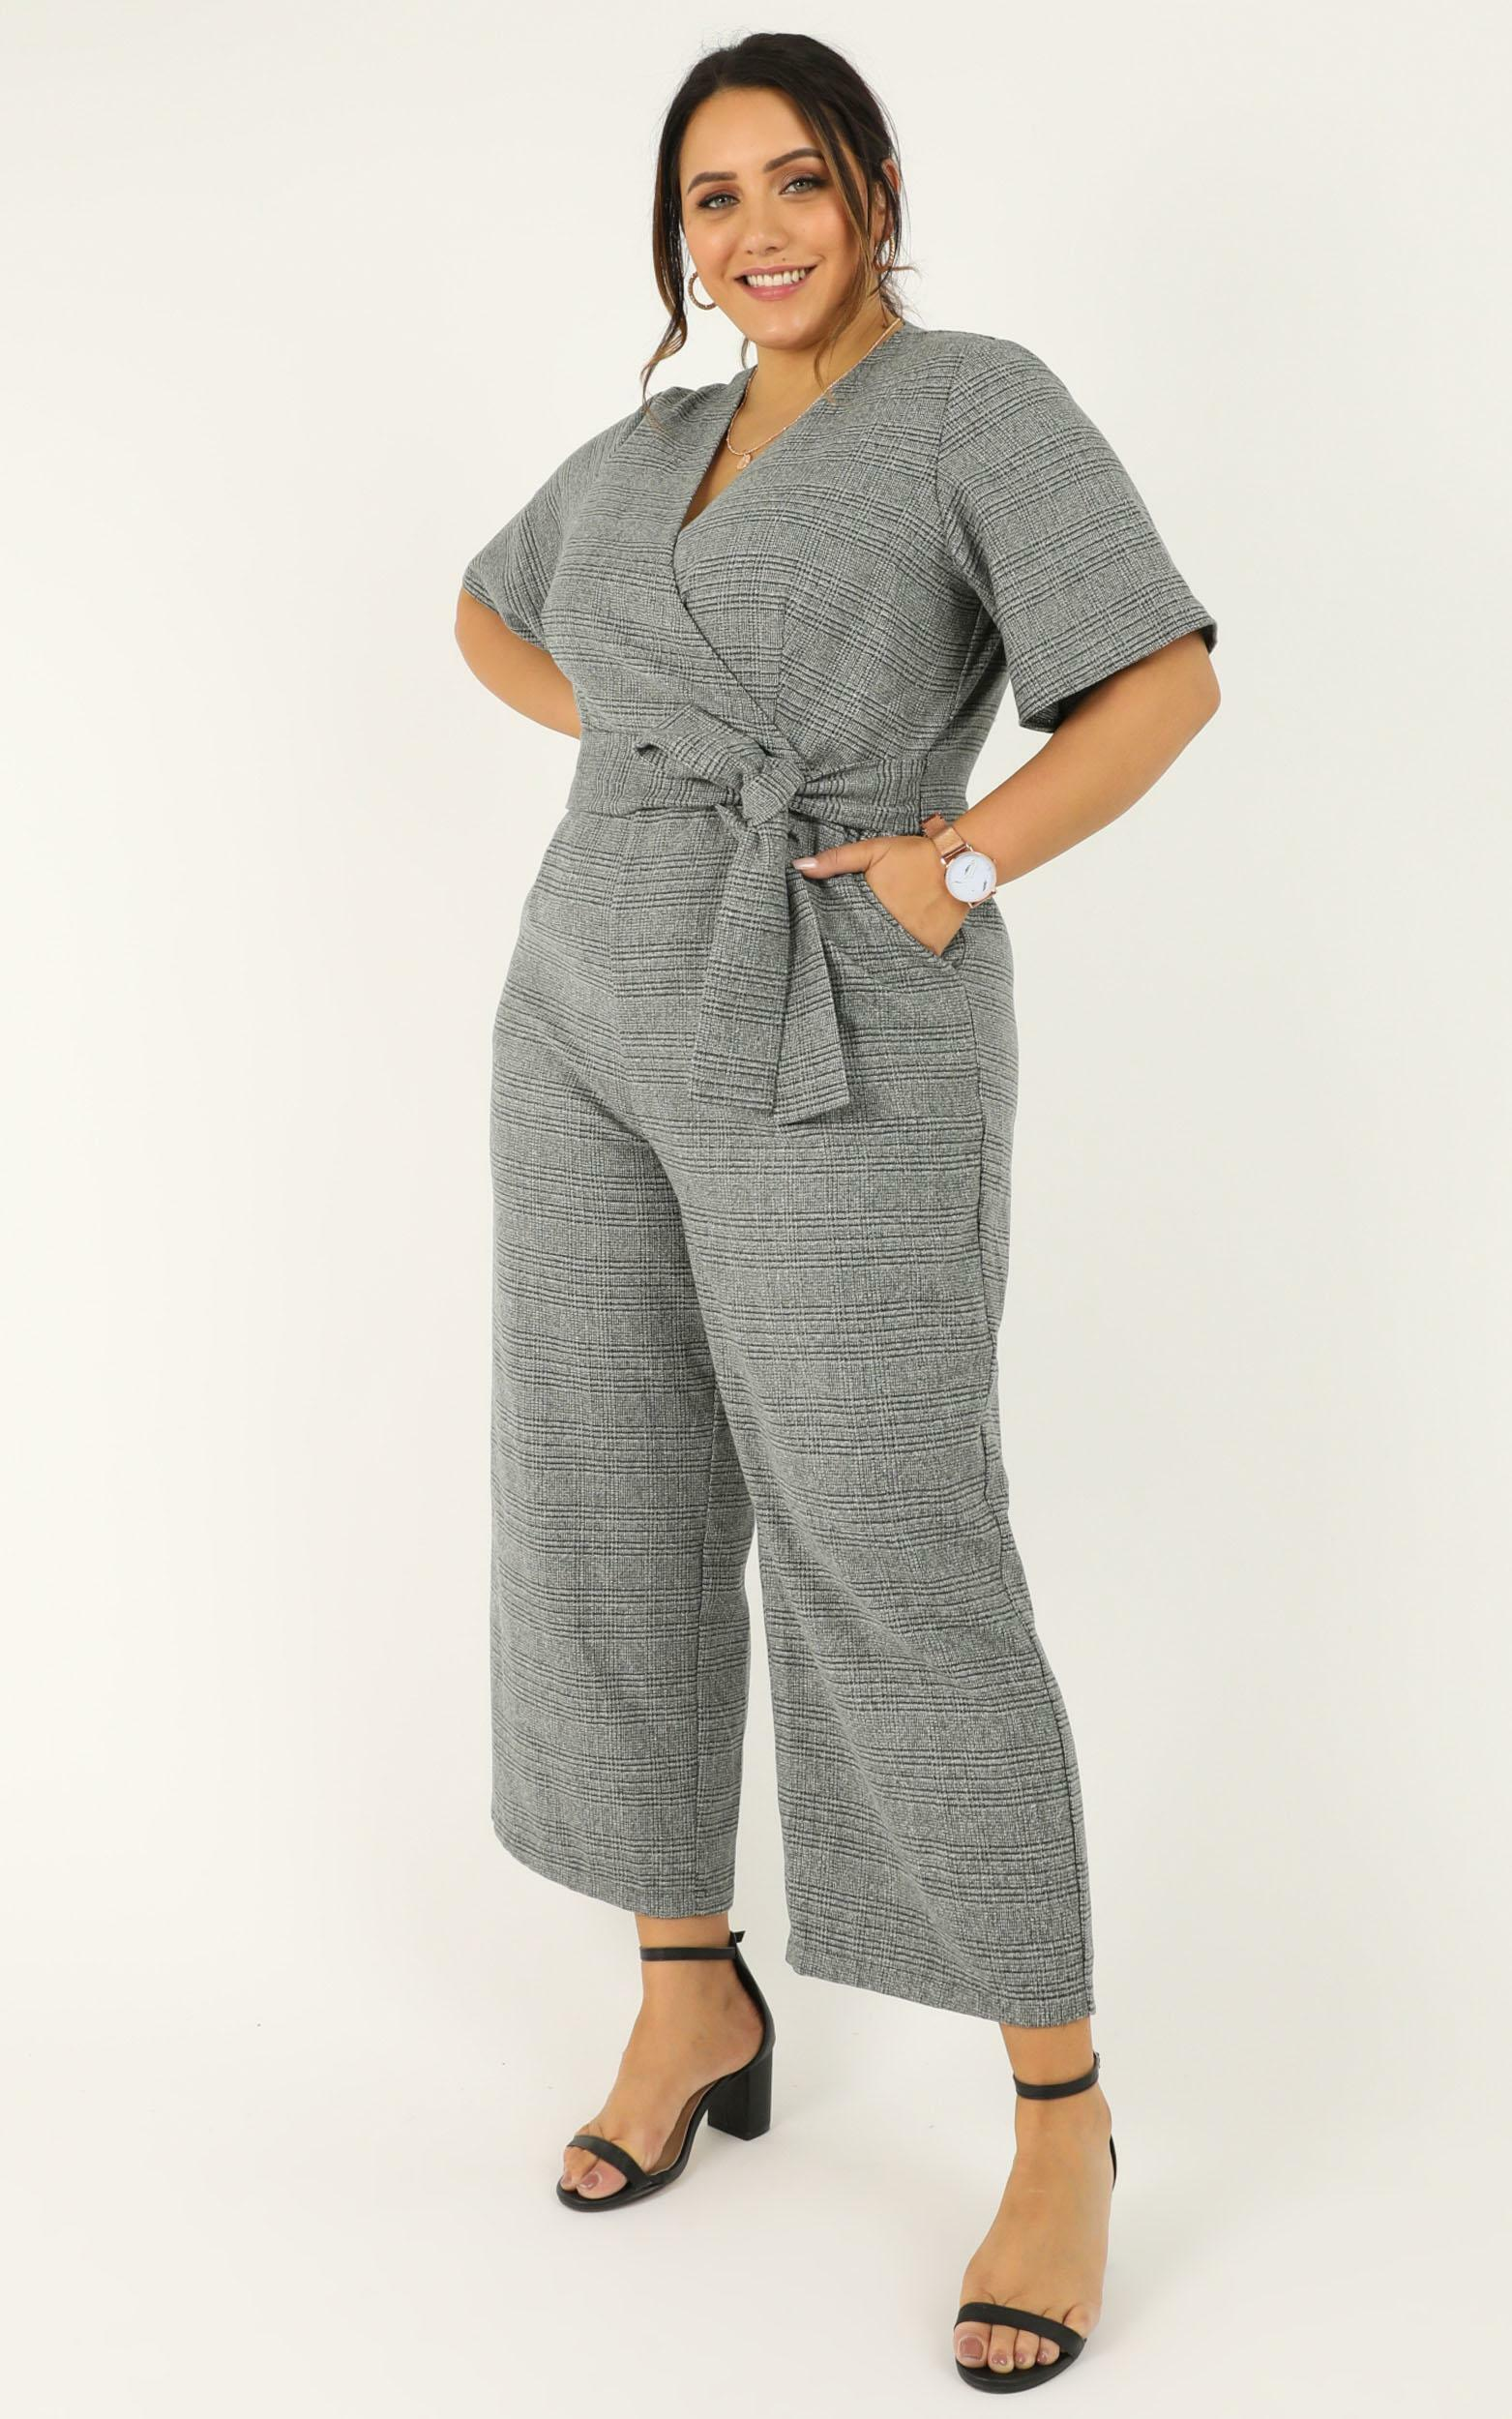 City Dweller Jumpsuit in grey check - 18 (XXXL), Grey, hi-res image number null